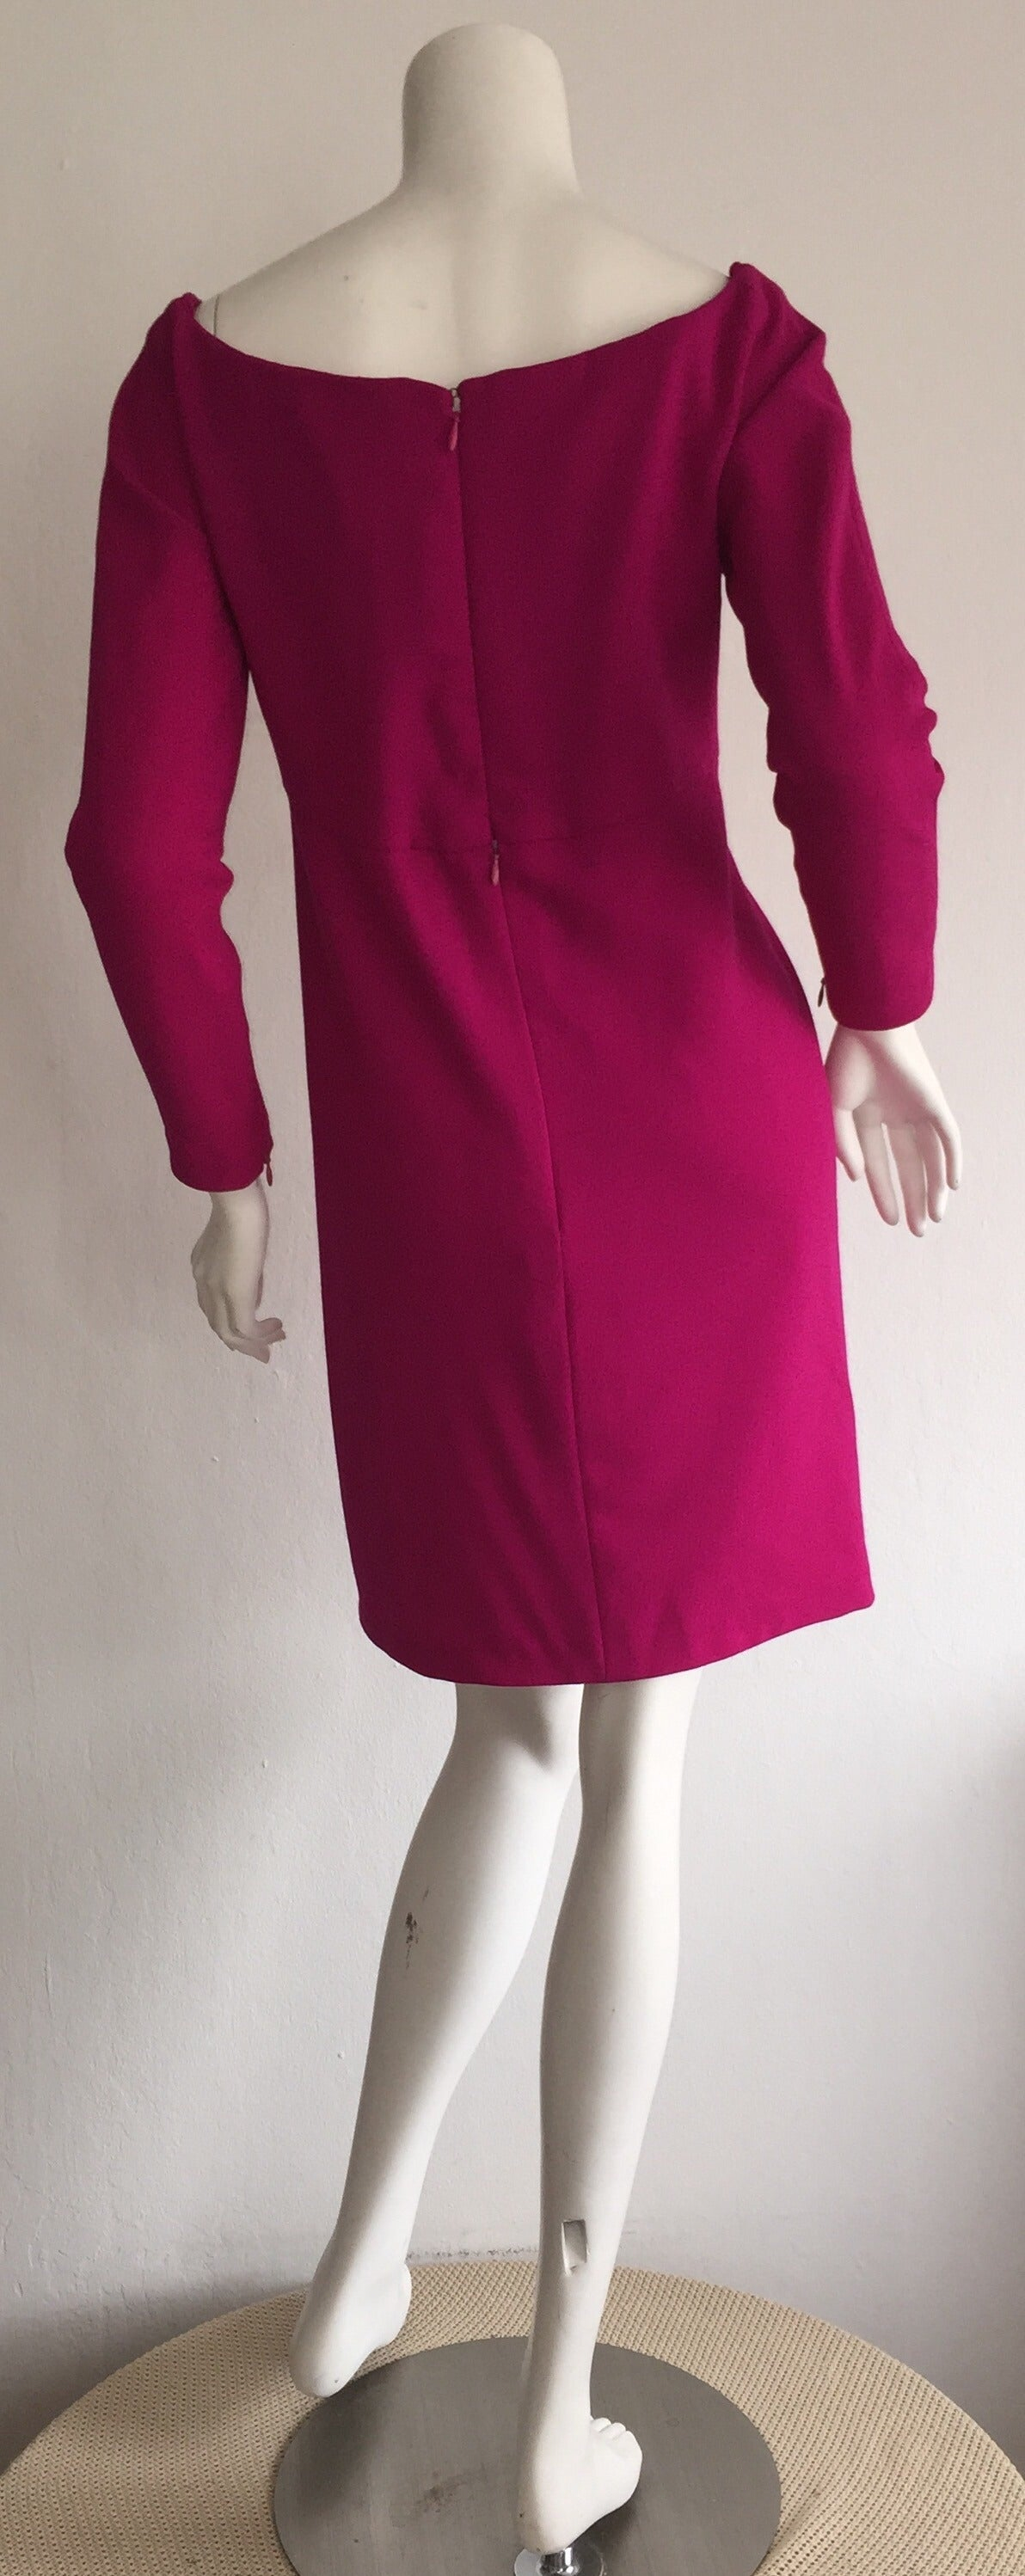 9d29d8b3fbe Vintage Carolyne Roehm Neiman Marcus Fuchsia Pink Babydoll Cocktail Dress  In Excellent Condition For Sale In